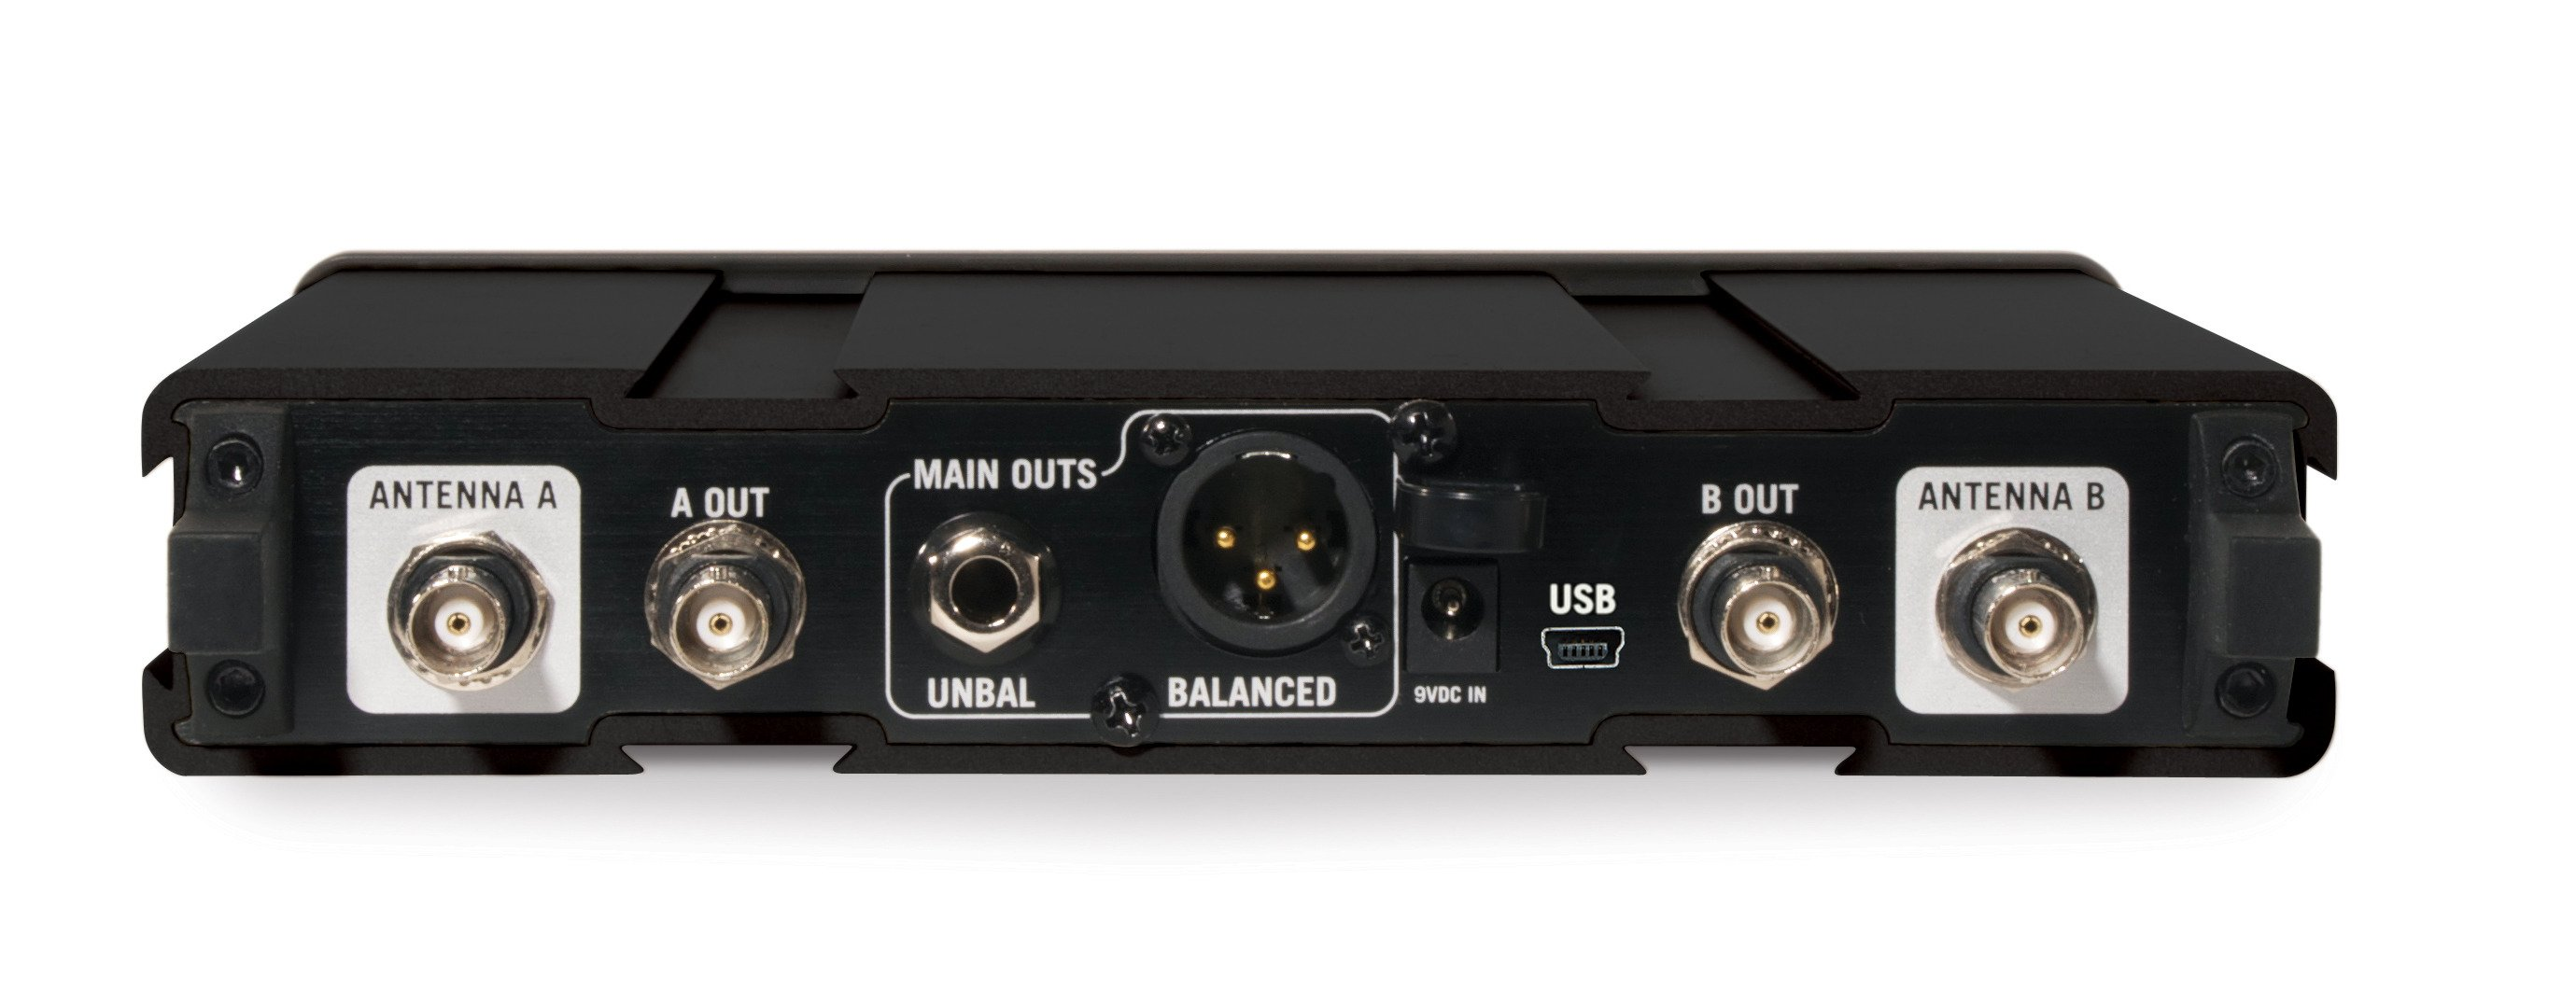 14-Channel Wireless Receiver for the XD-V75 Series